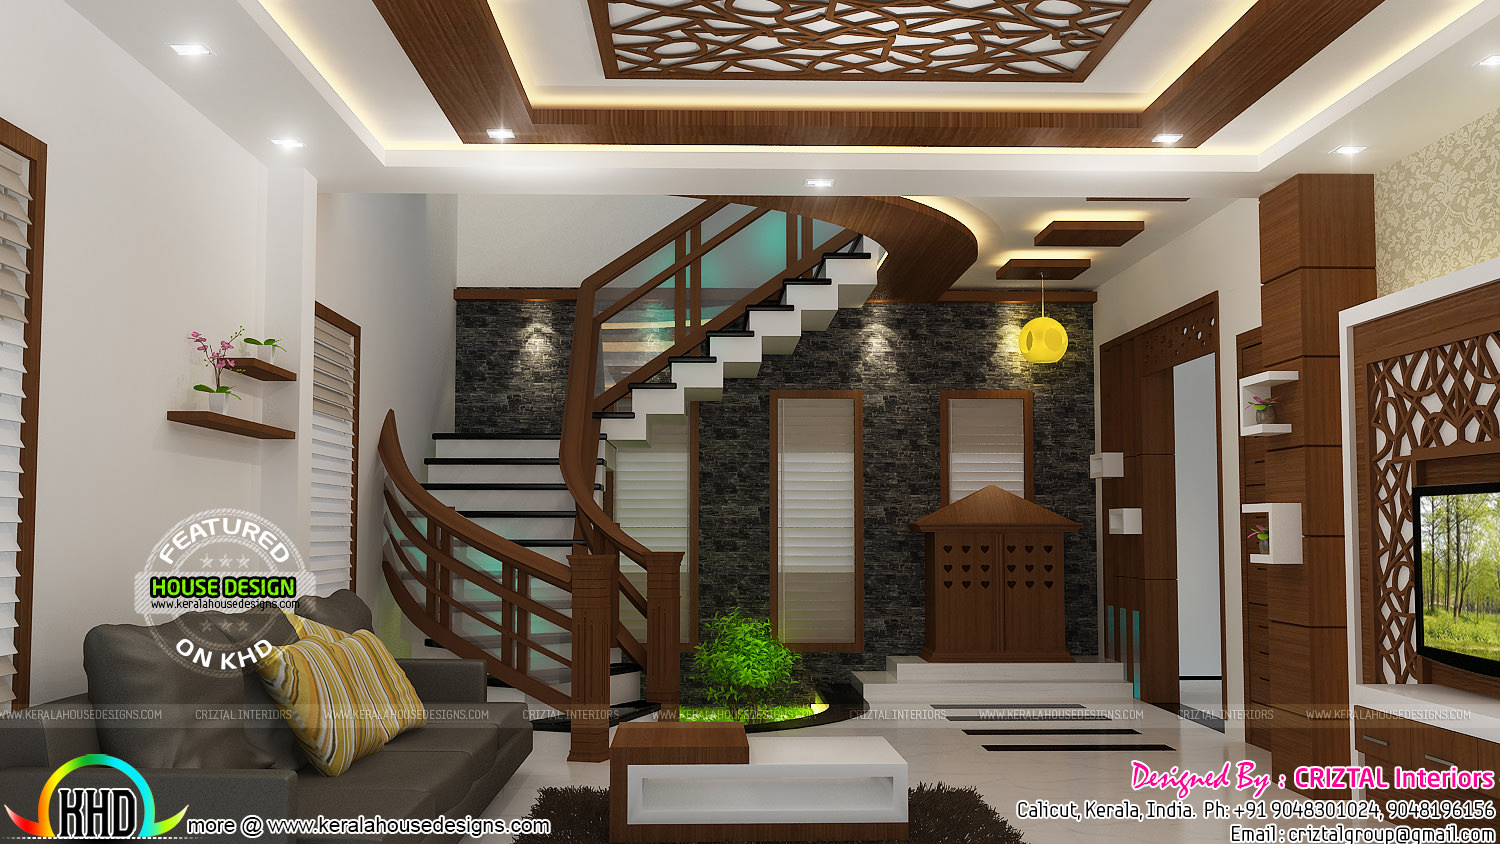 Bedroom dining hall and living interior kerala home for Living hall interior design